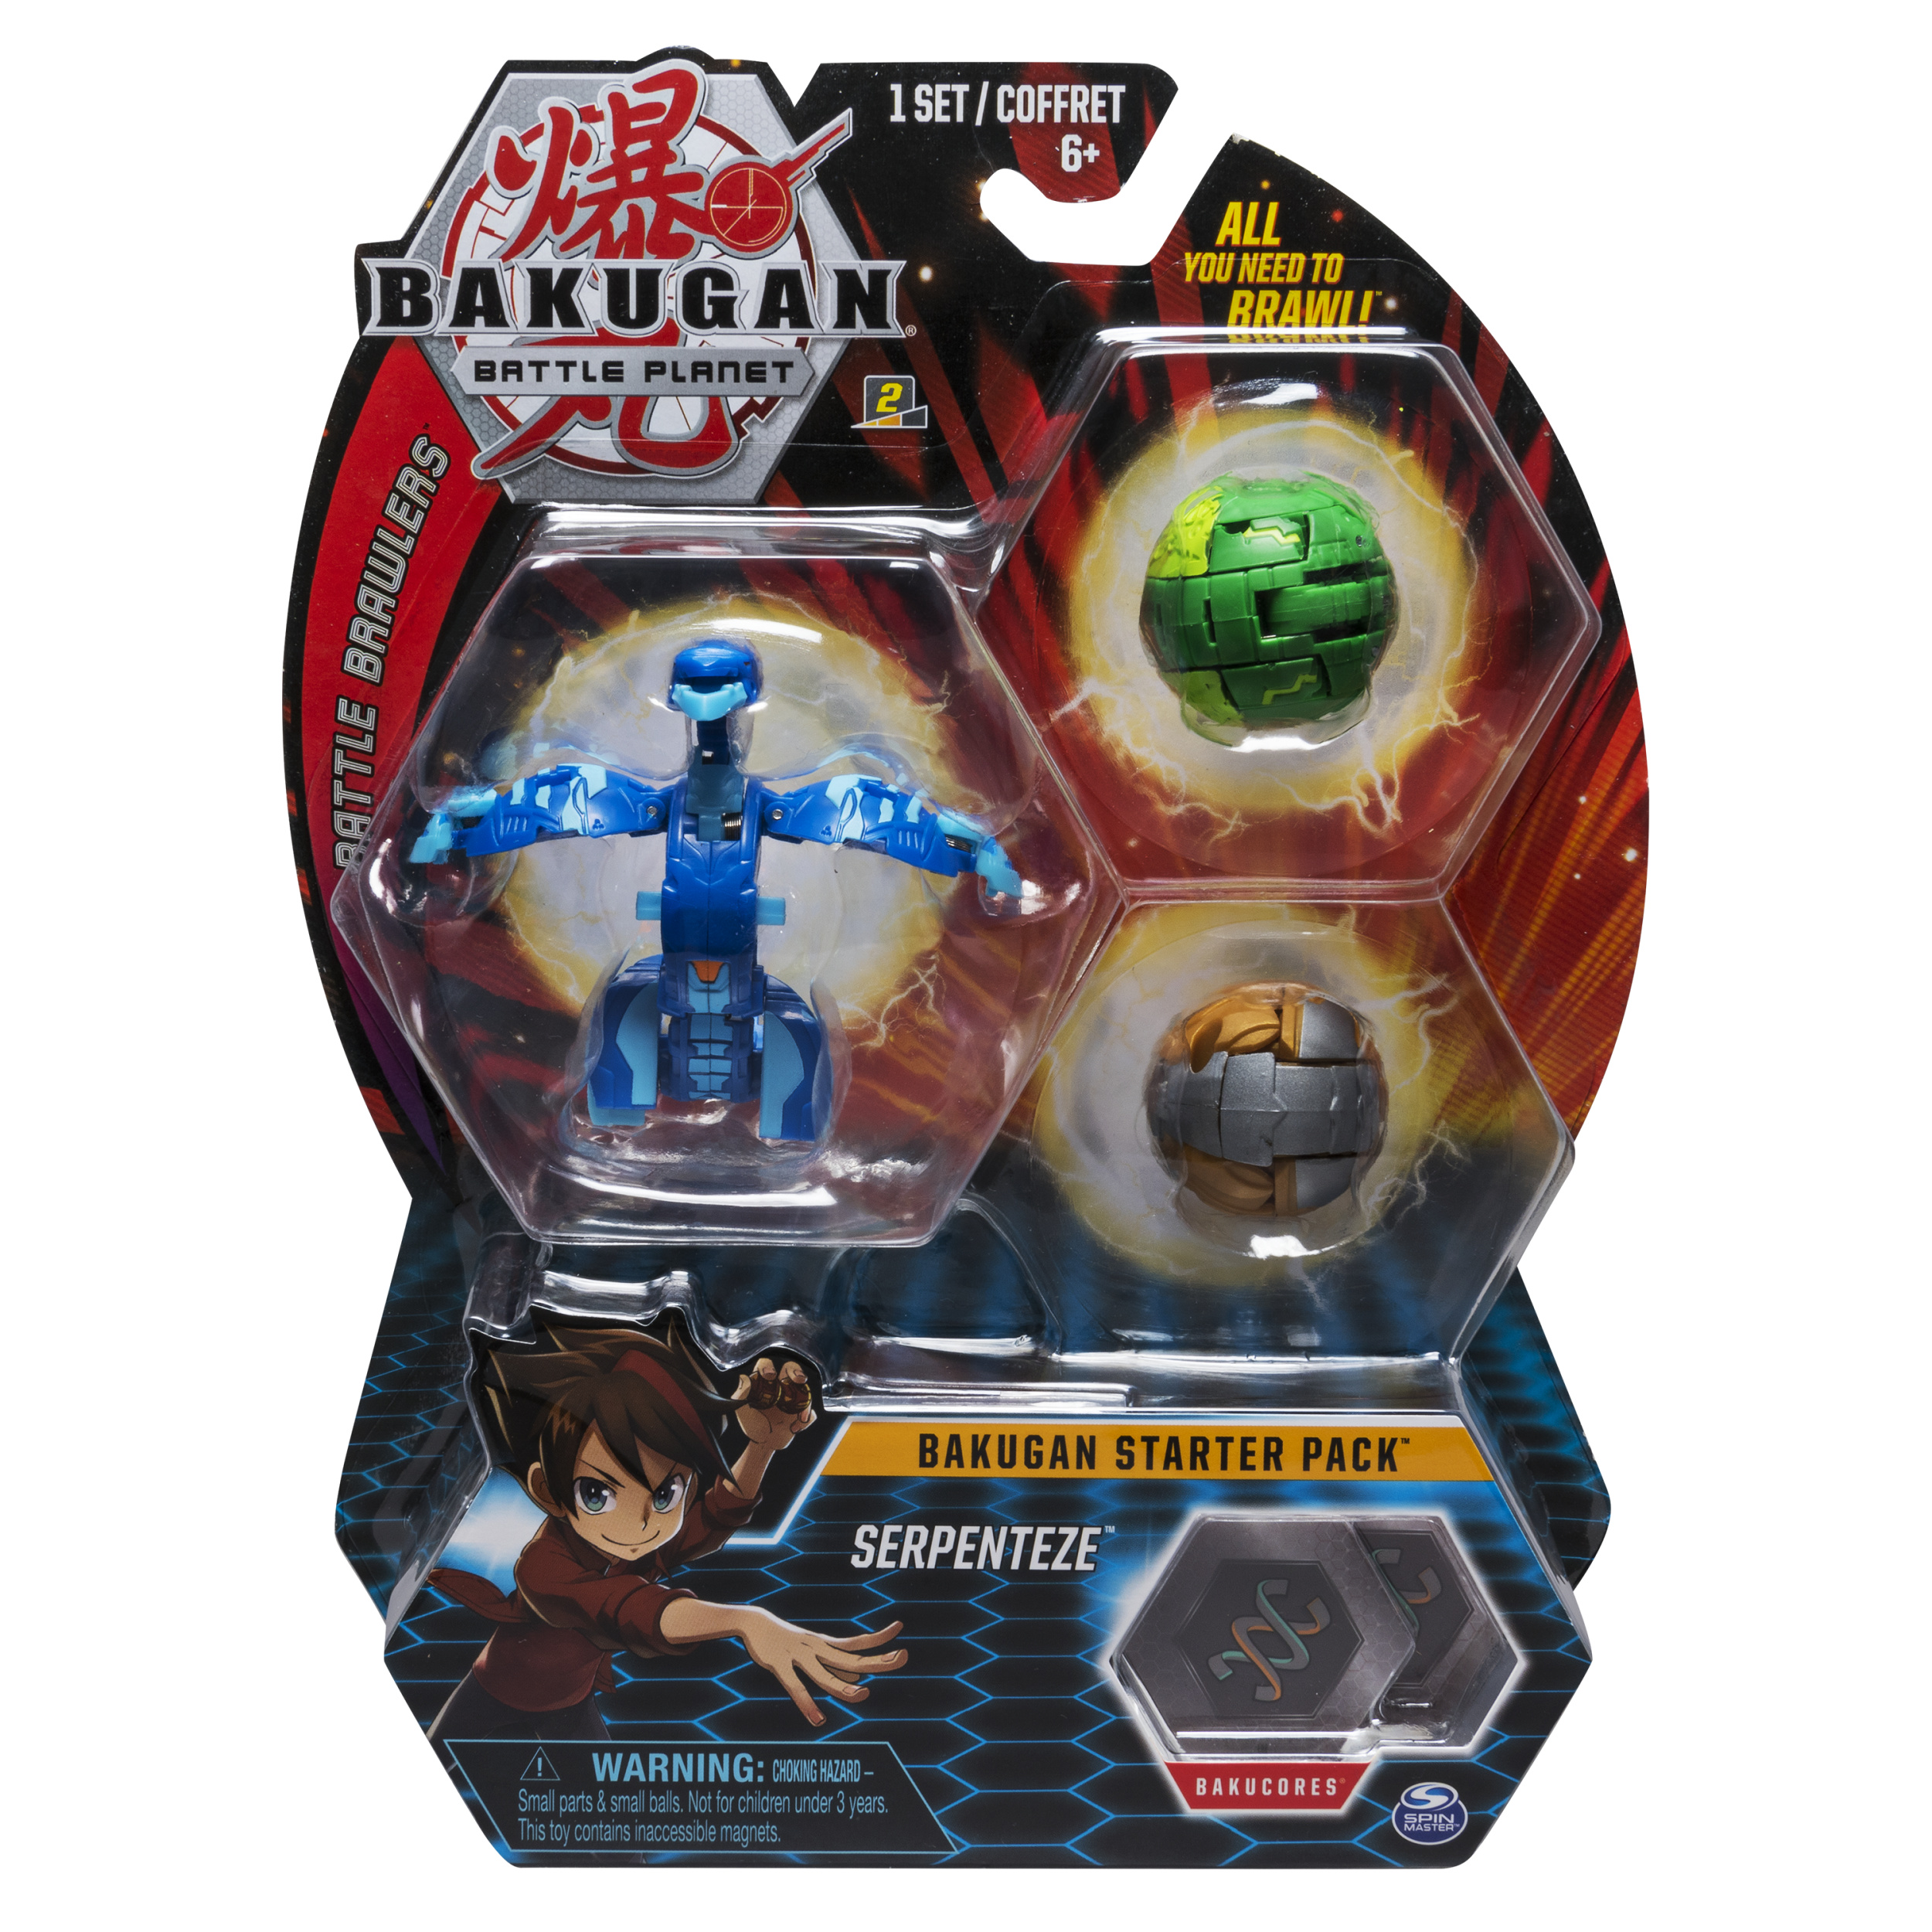 Bakugan Starter Pack 3-Pack, Serpenteze, Collectible Transforming Creatures, for Ages 6 and Up